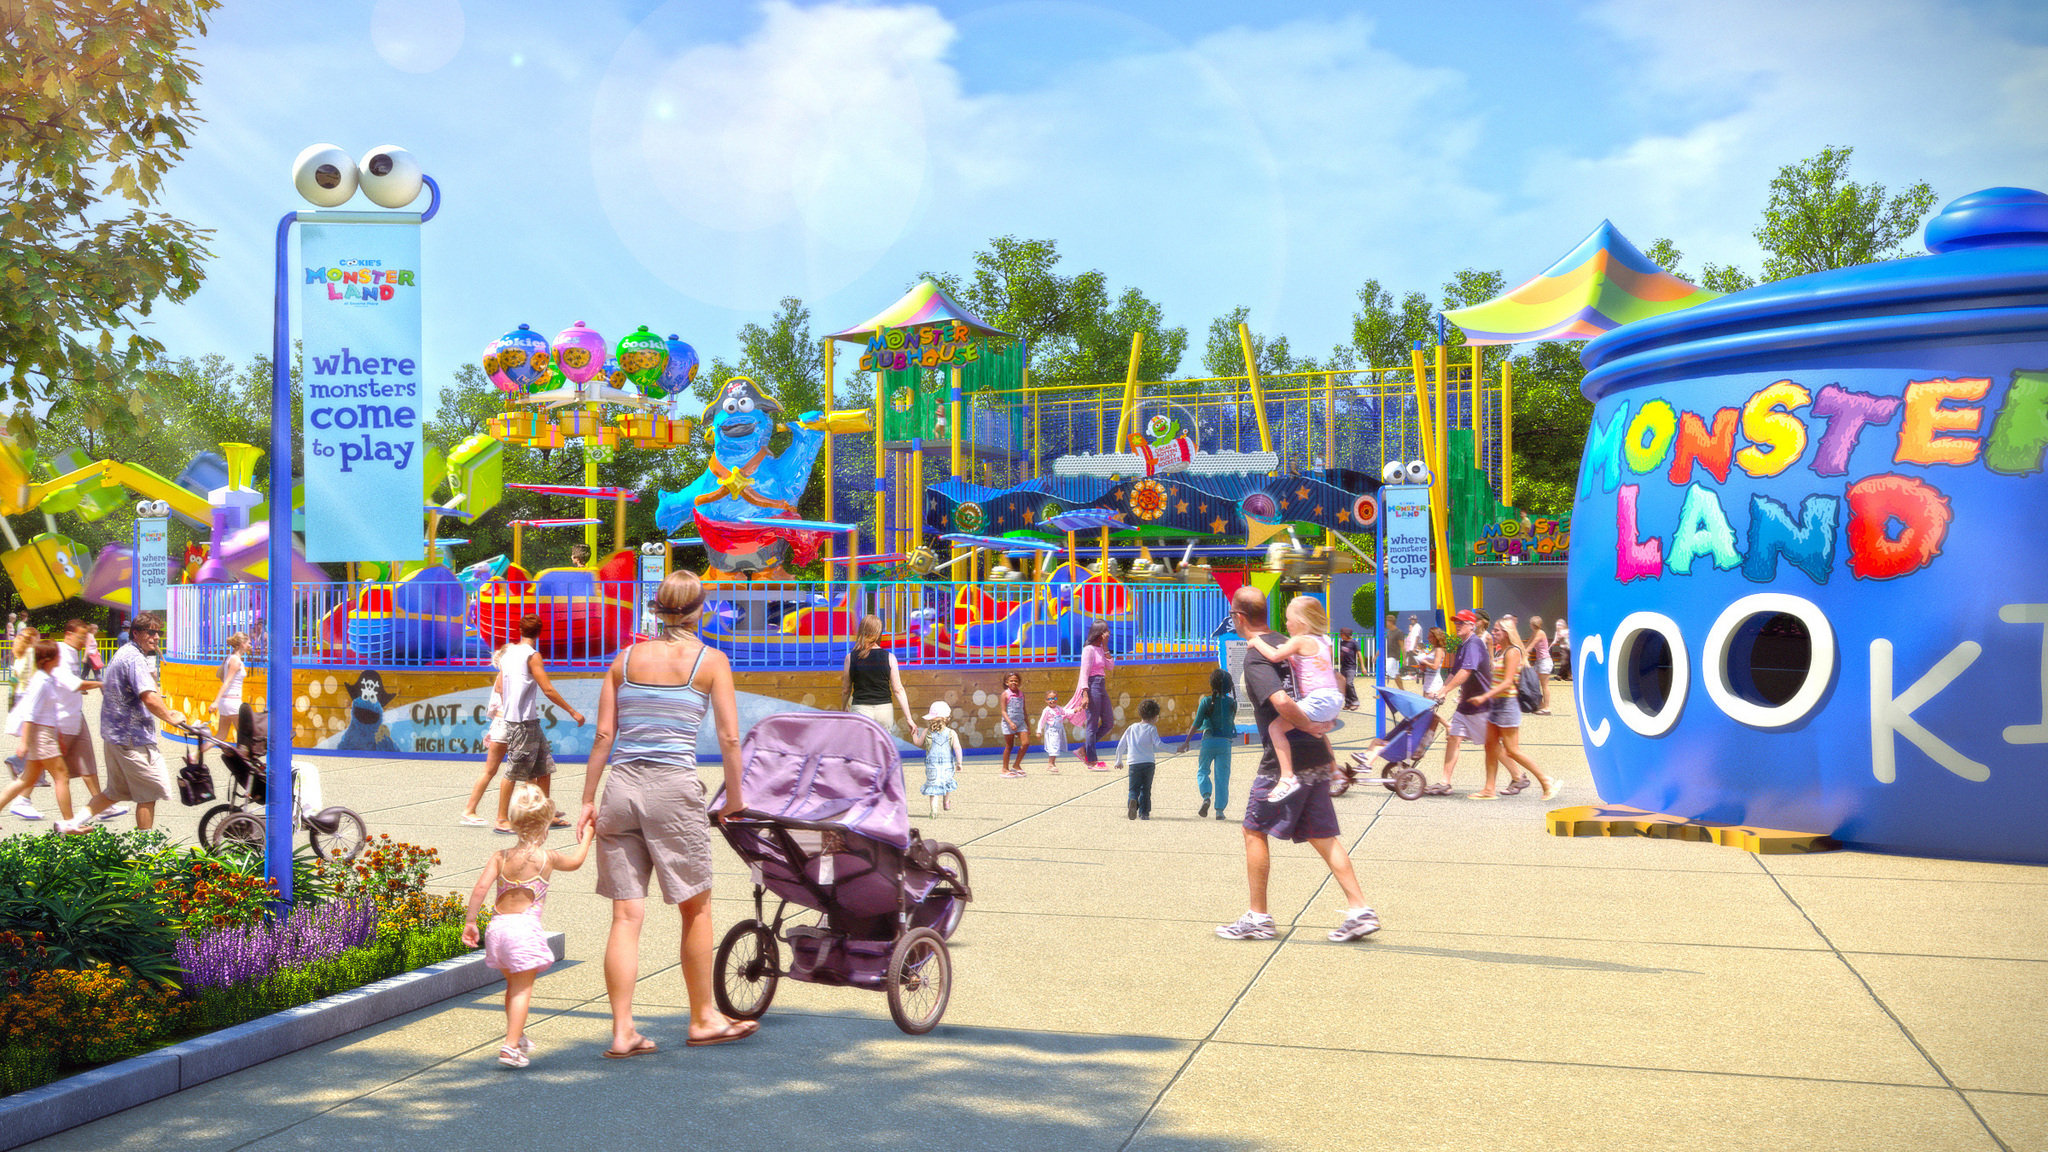 Visit: Add one of these family-friendly amusement parks to your Summer travel list